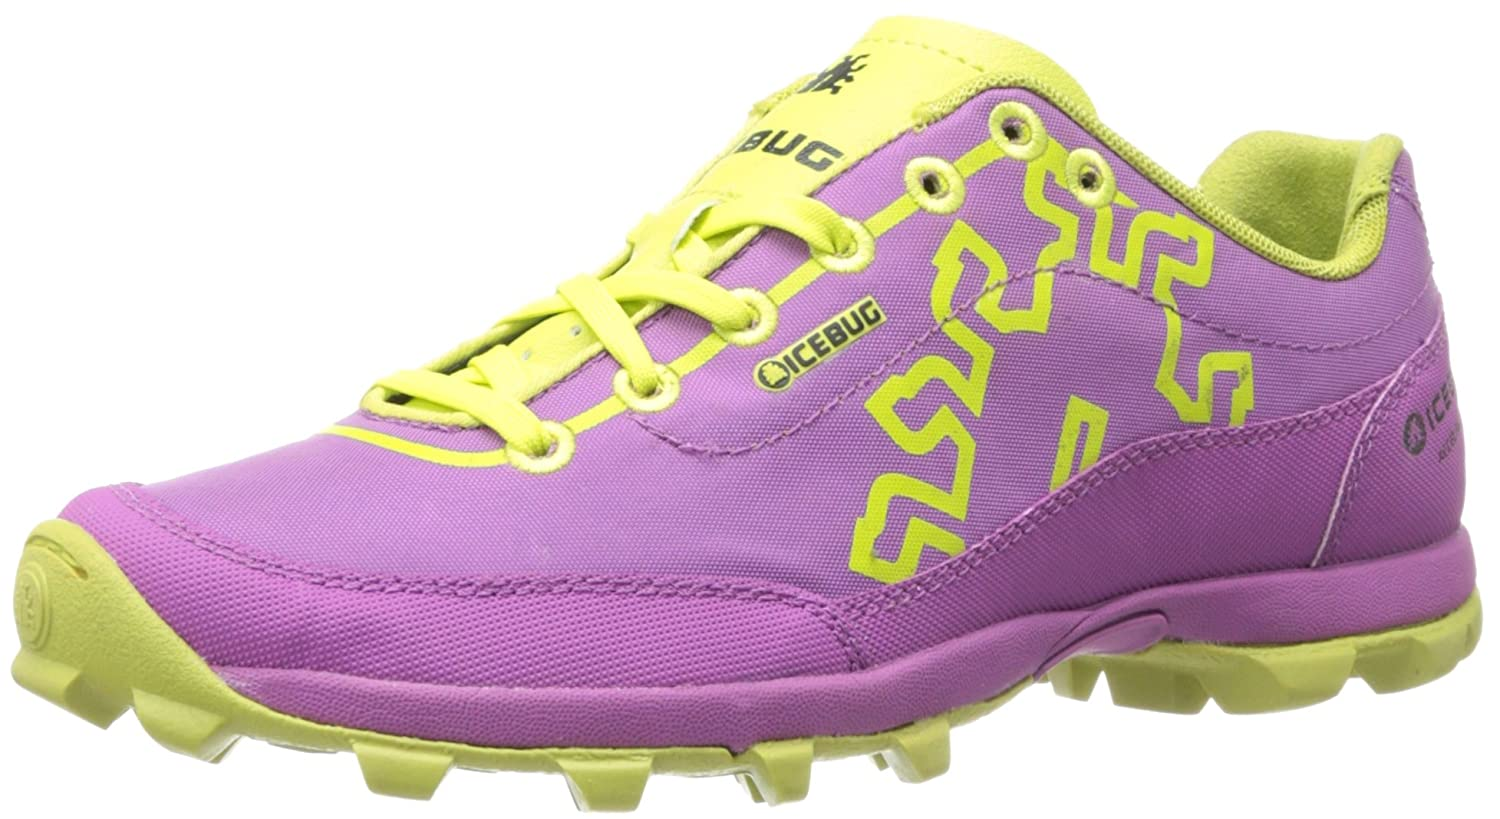 Icebug Women's Acceleritas4 RB9X Traction Running Shoe B00GQUT10I 10 B(M) US|Orchid/Poison